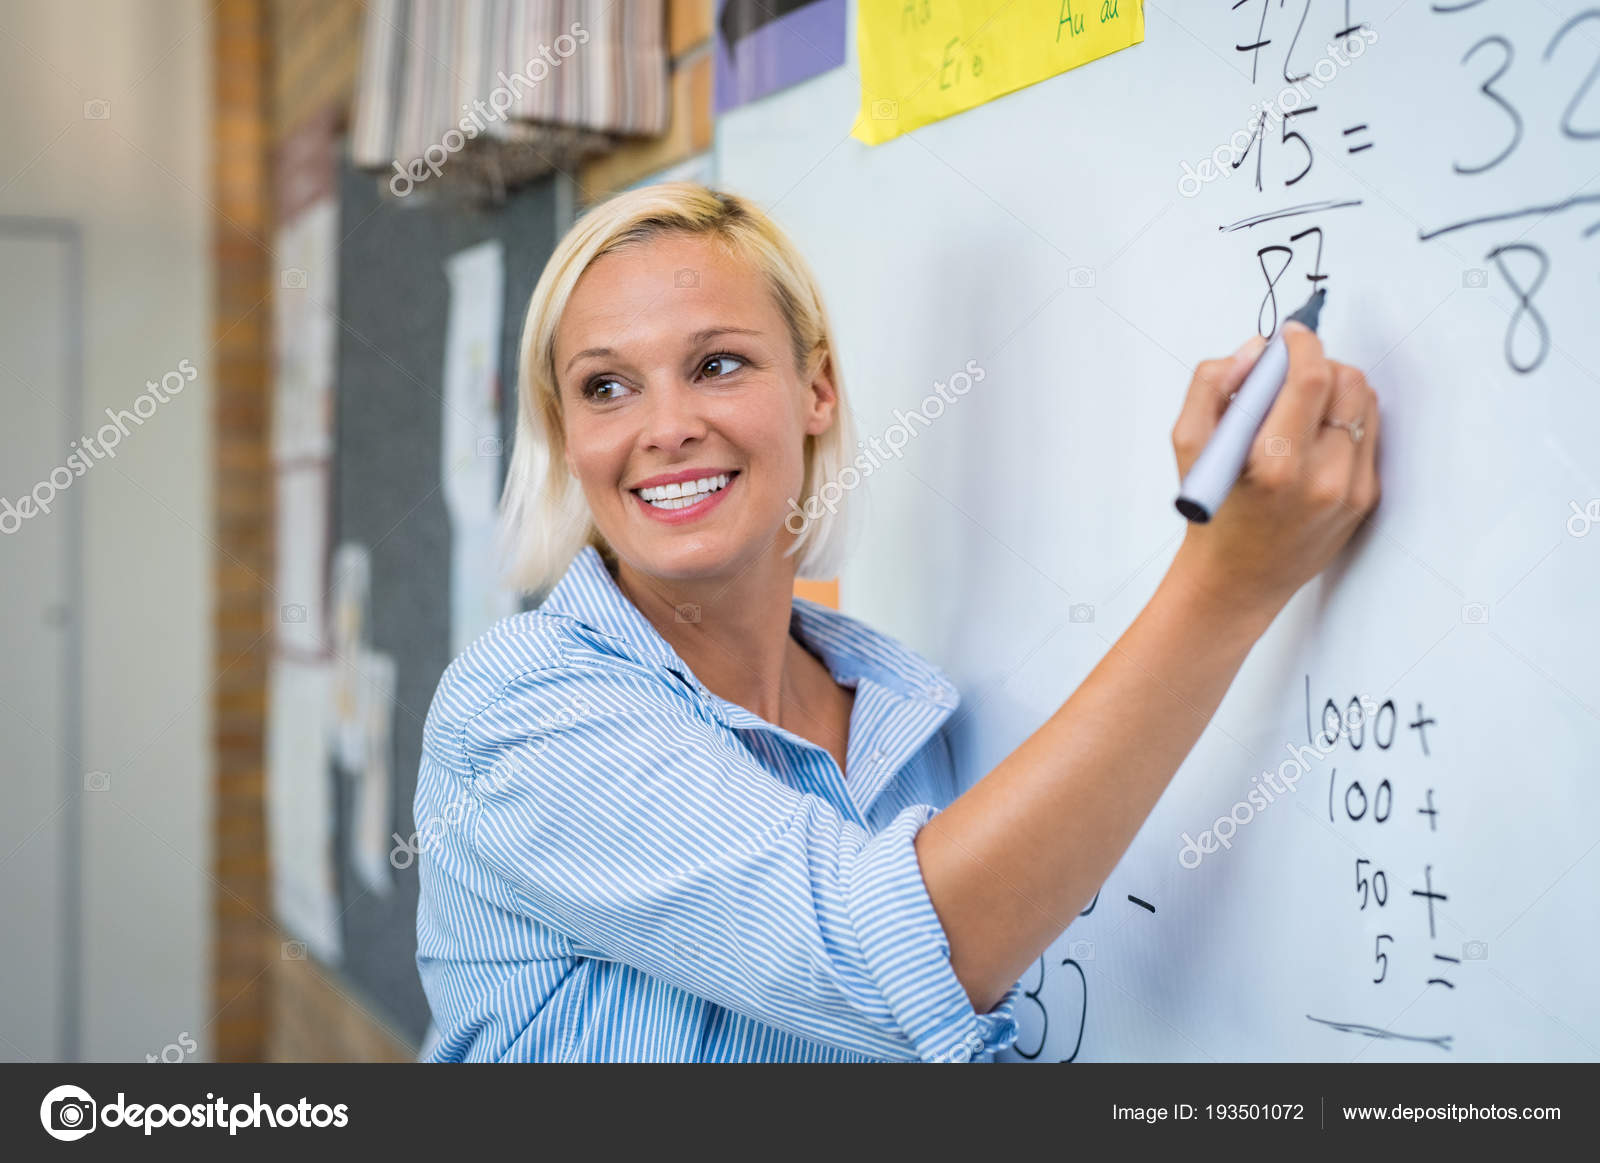 Teaching Maths Teacher Teaching Math On Whiteboard Stock Photo Ridofranz